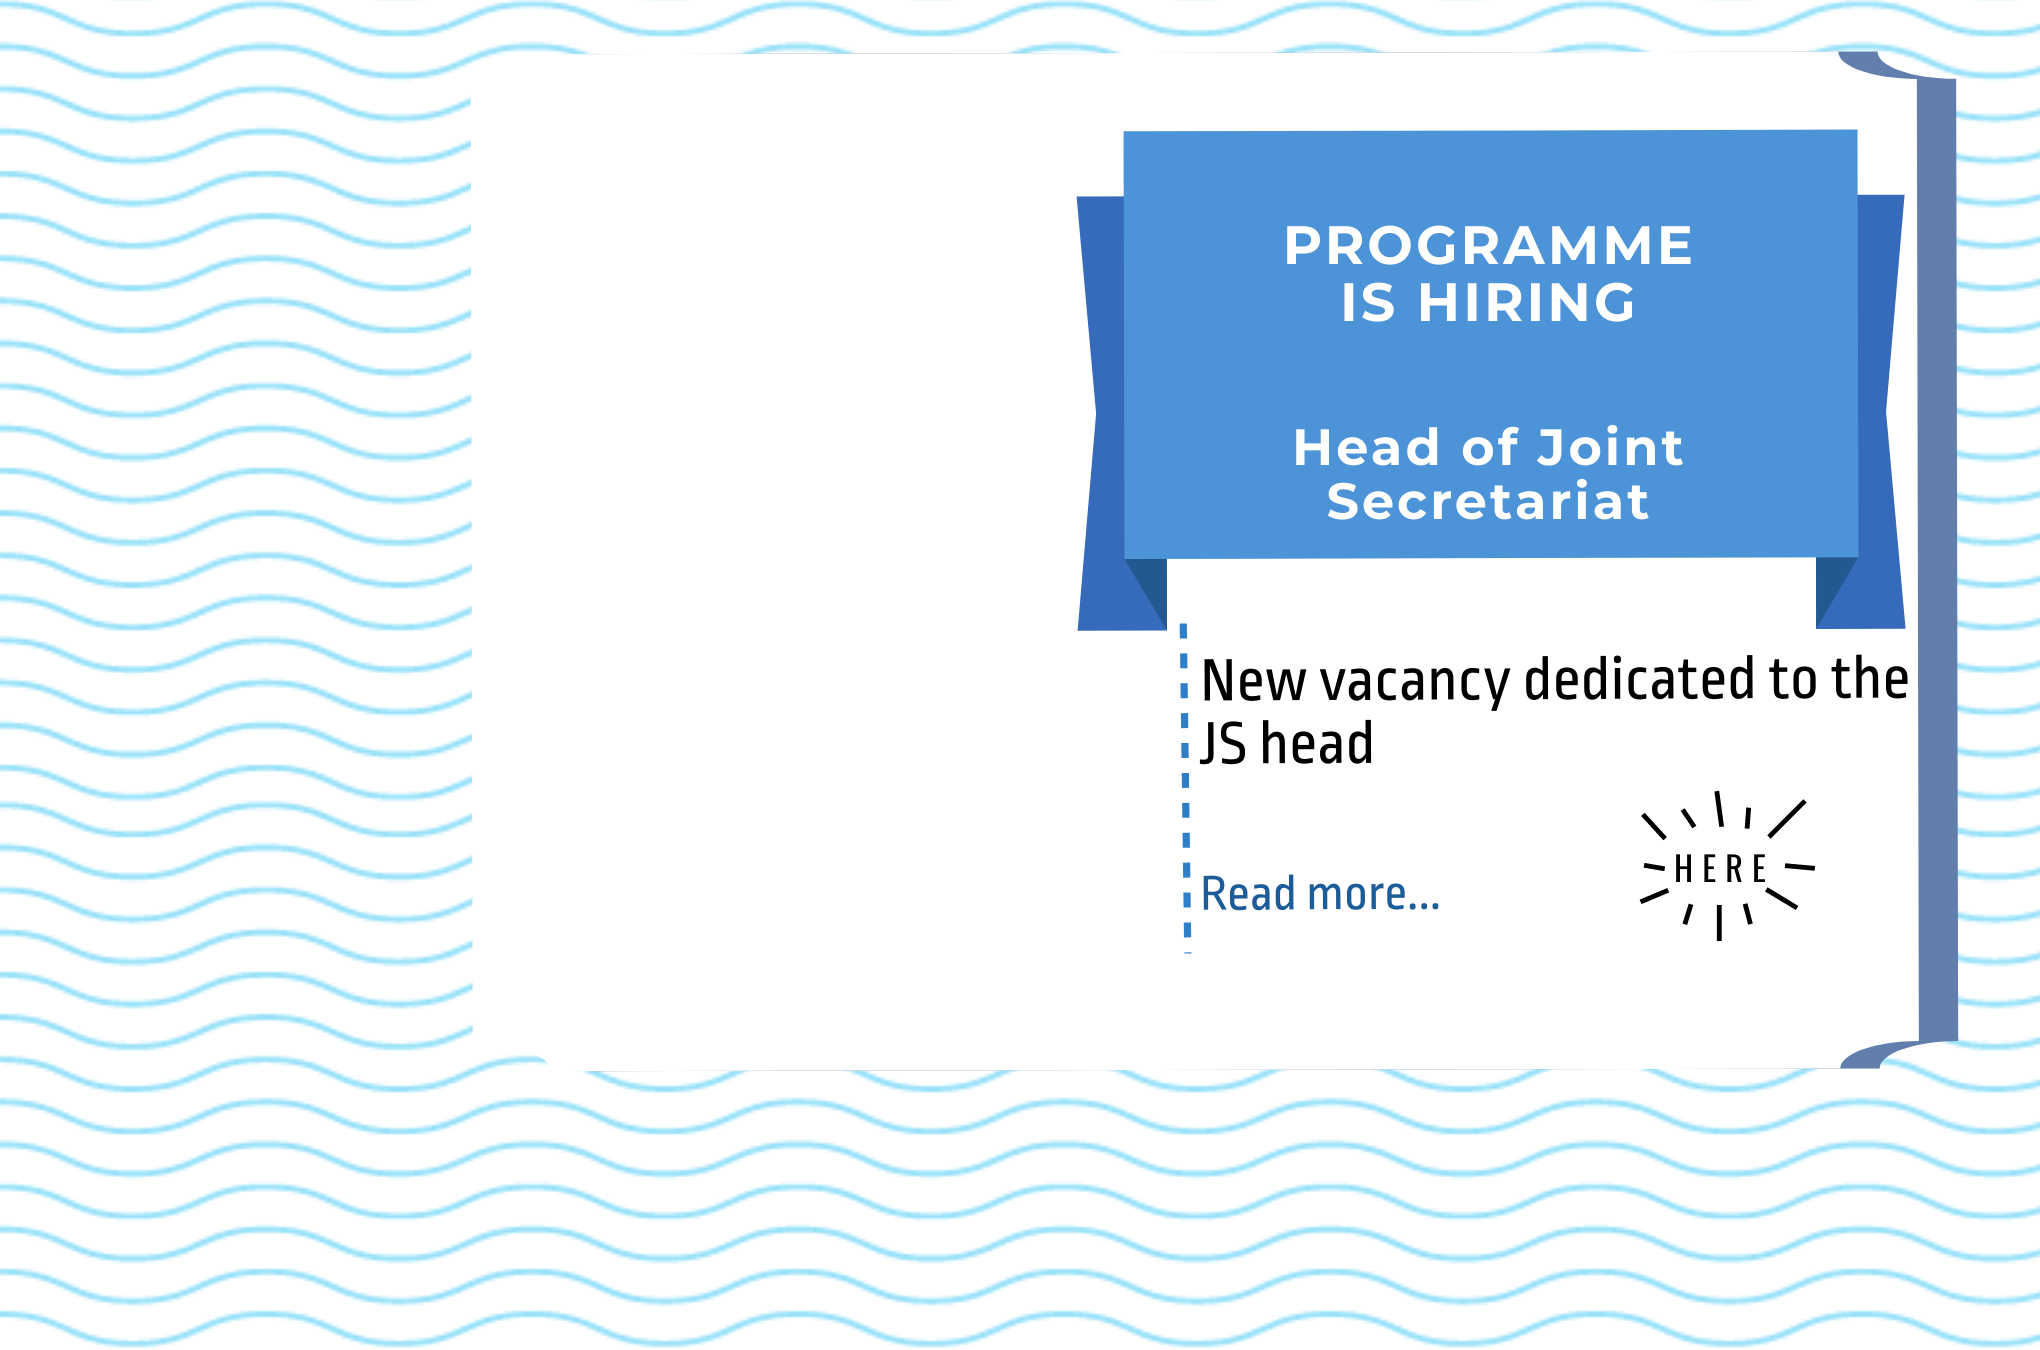 Programme is hiring the Head of Joint Secretariat